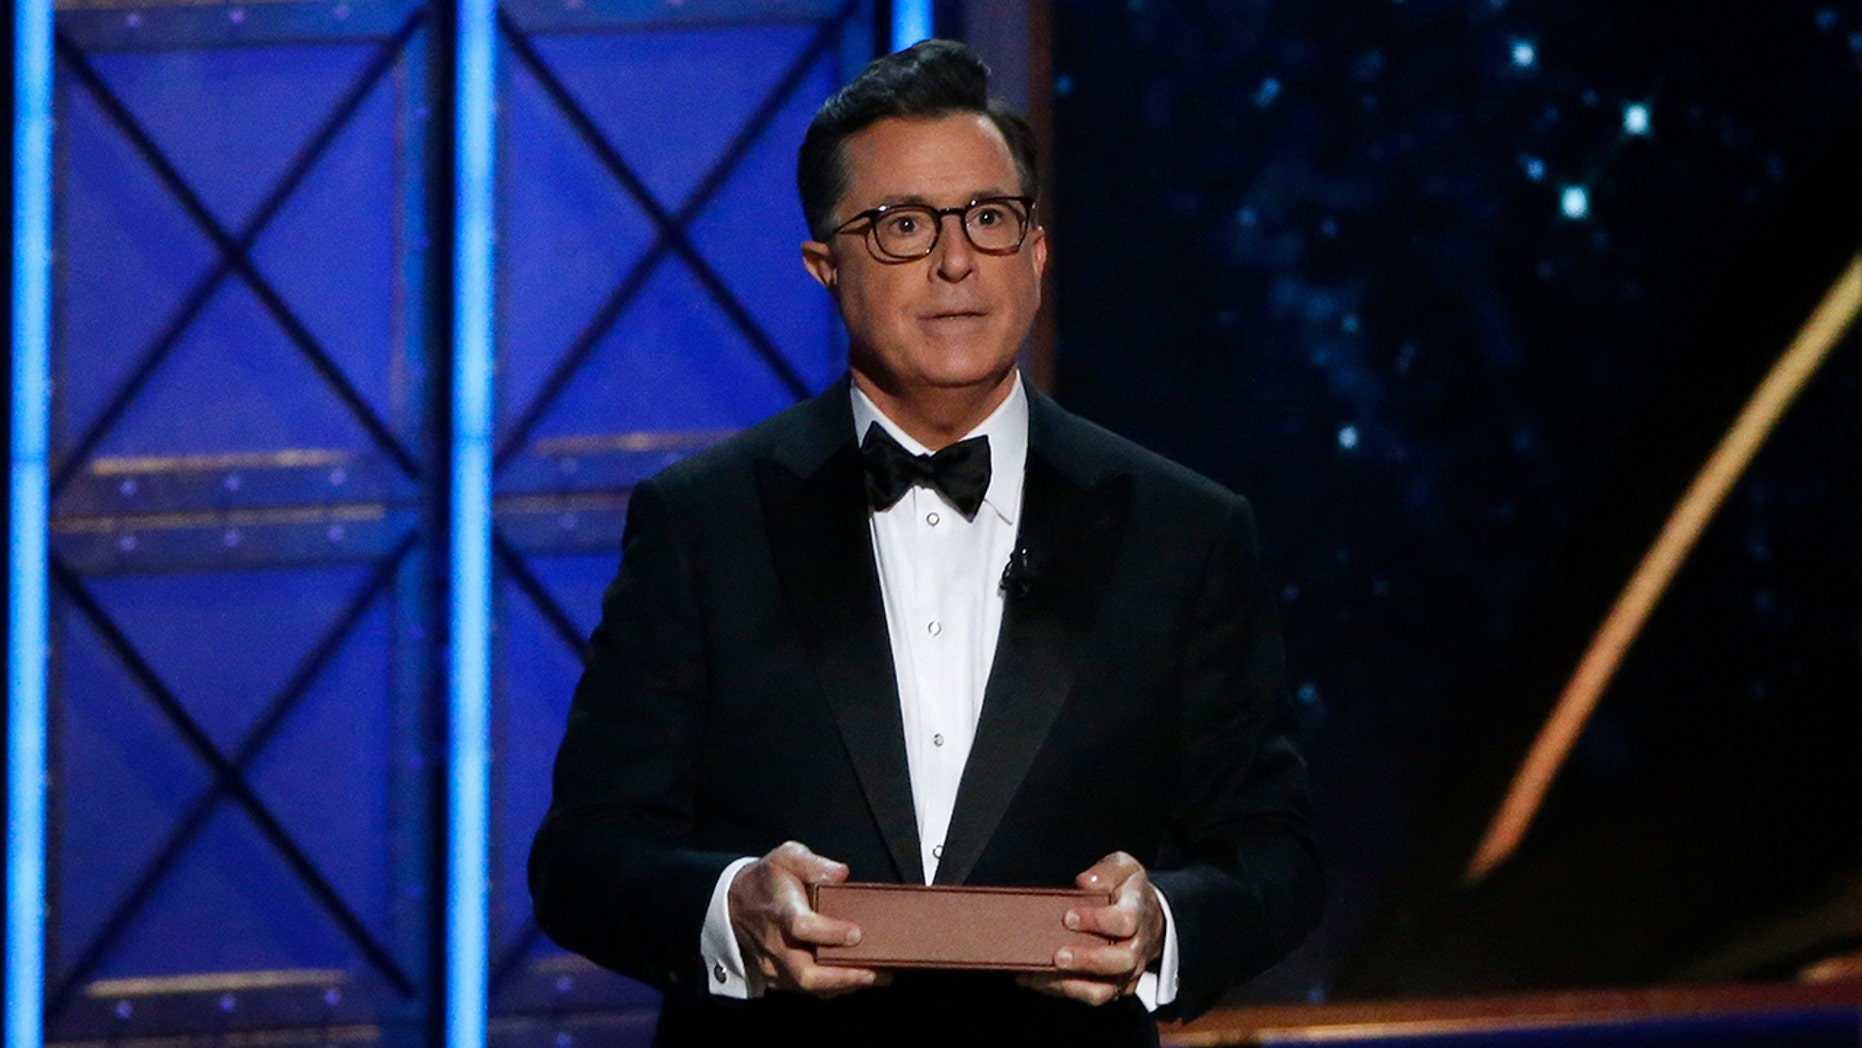 'Late Show' host Stephen Colbert ripped President Trump on Tuesday night.